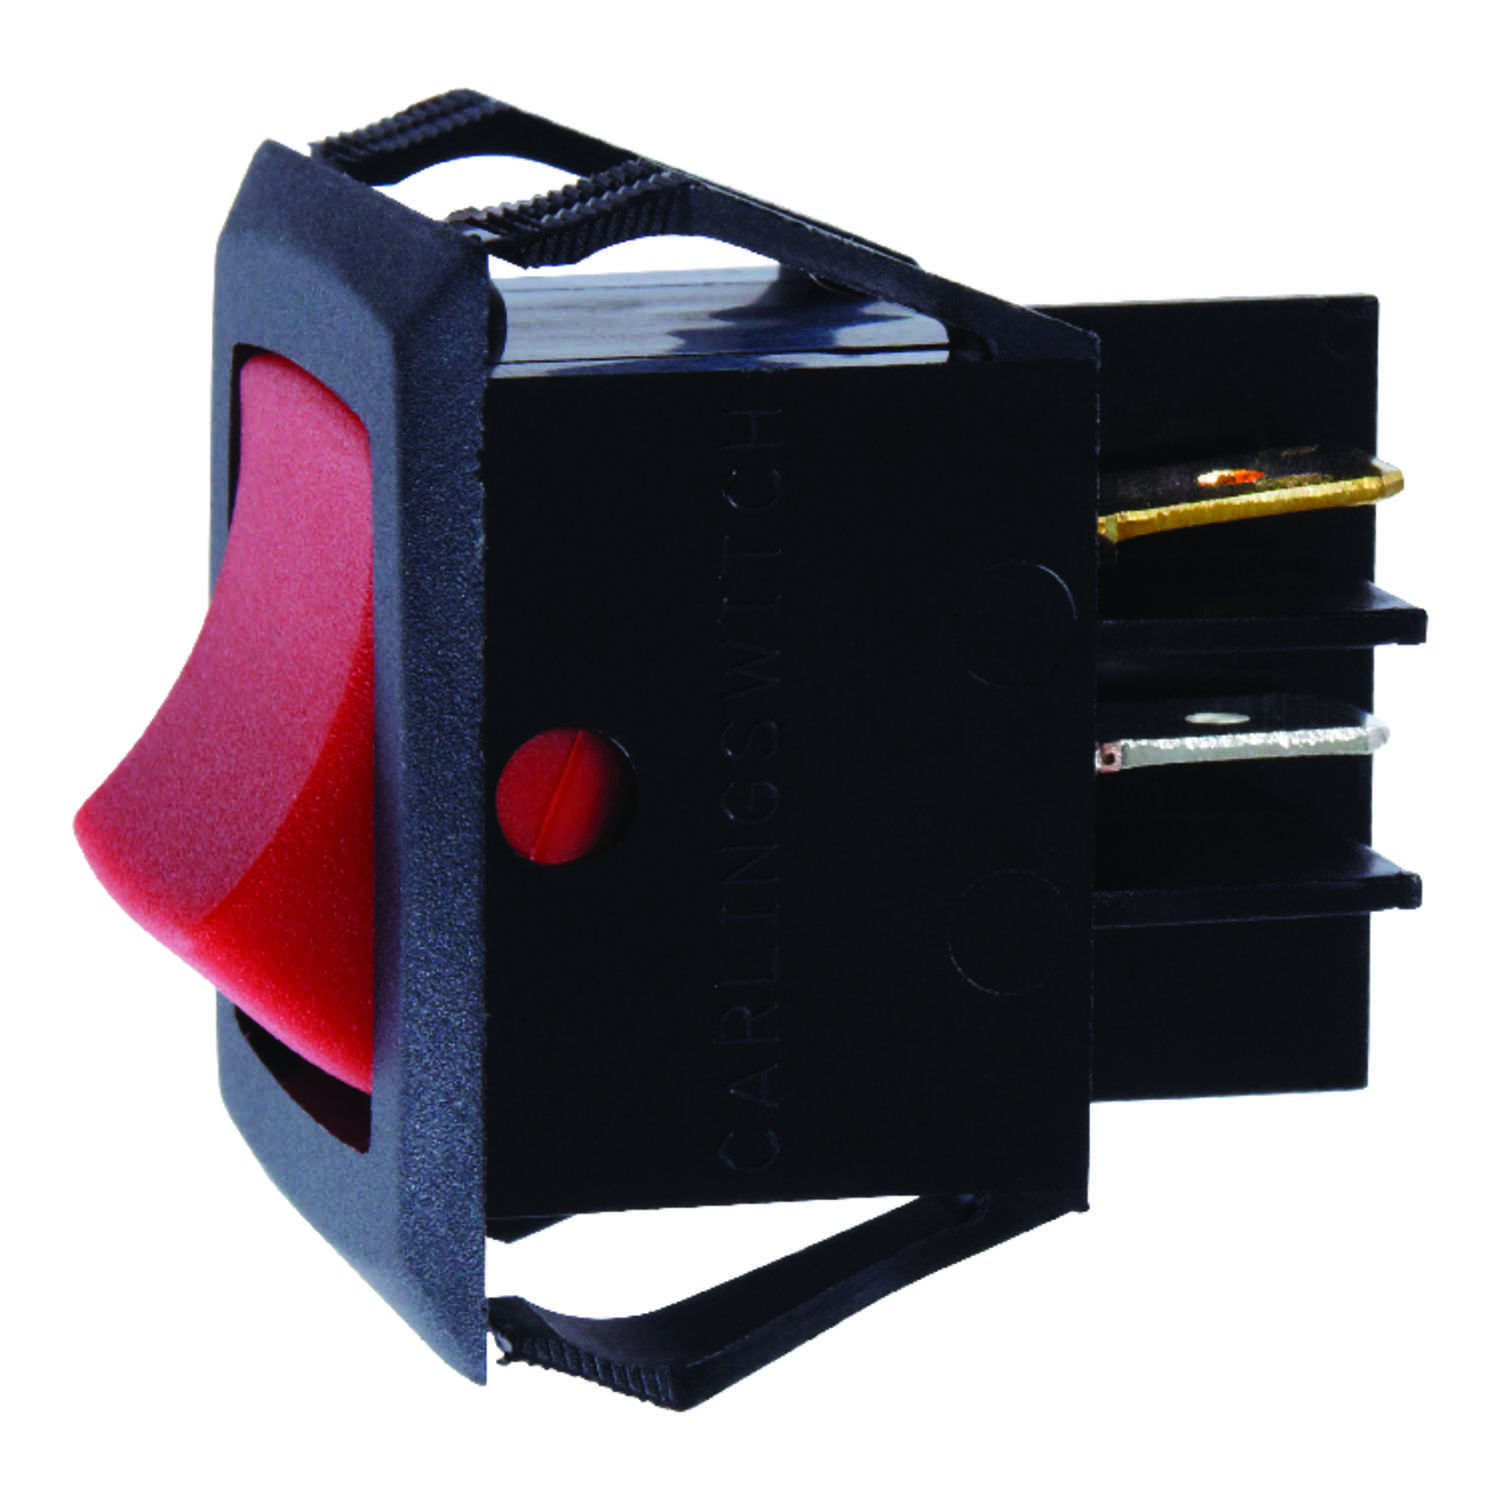 Jandorf  20 amps Double Pole  Rocker  Power Tool Switch  Black/Red  1